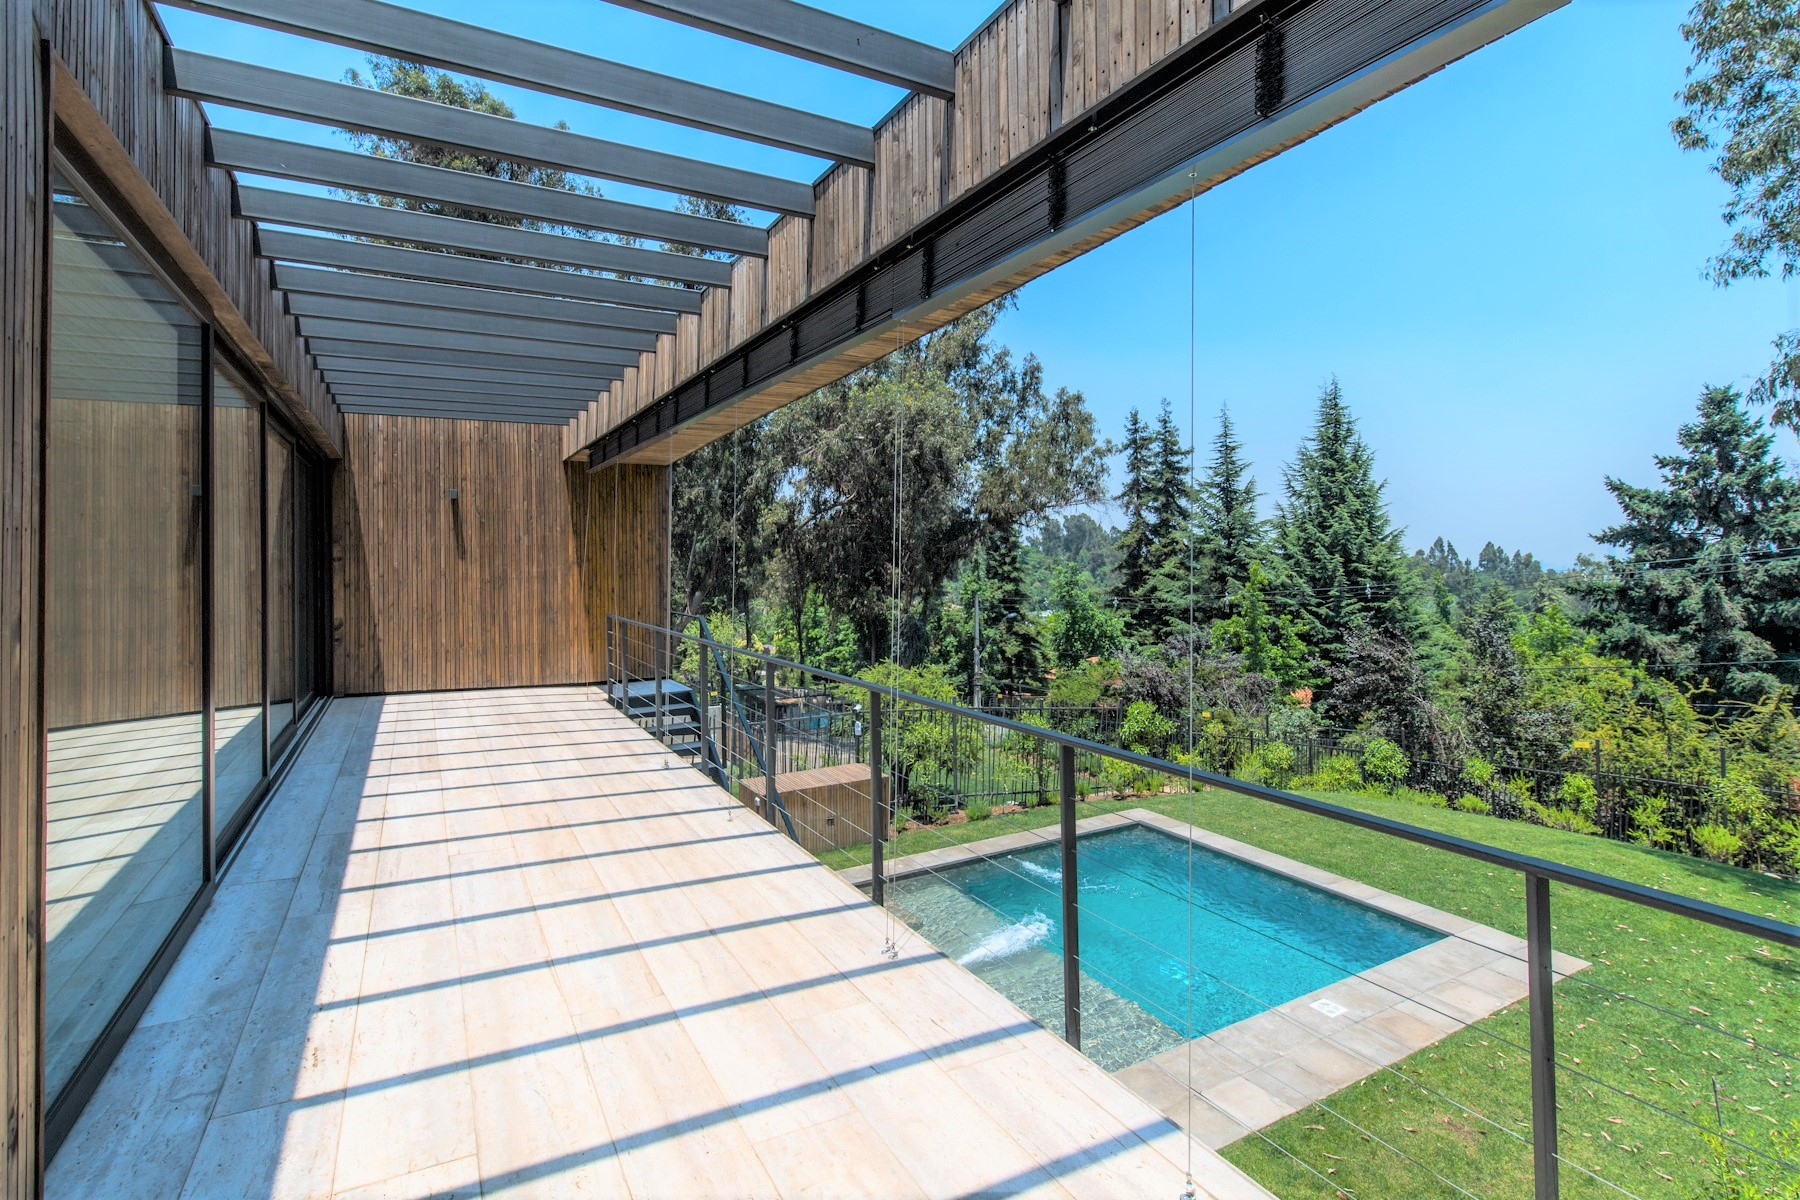 Частный односемейный дом для того Продажа на Fabulous contemporary house designed by famous chilean arquitect Mathias Klotz Vitacura, Santiago, Region Metropolitana De Santiago Чили